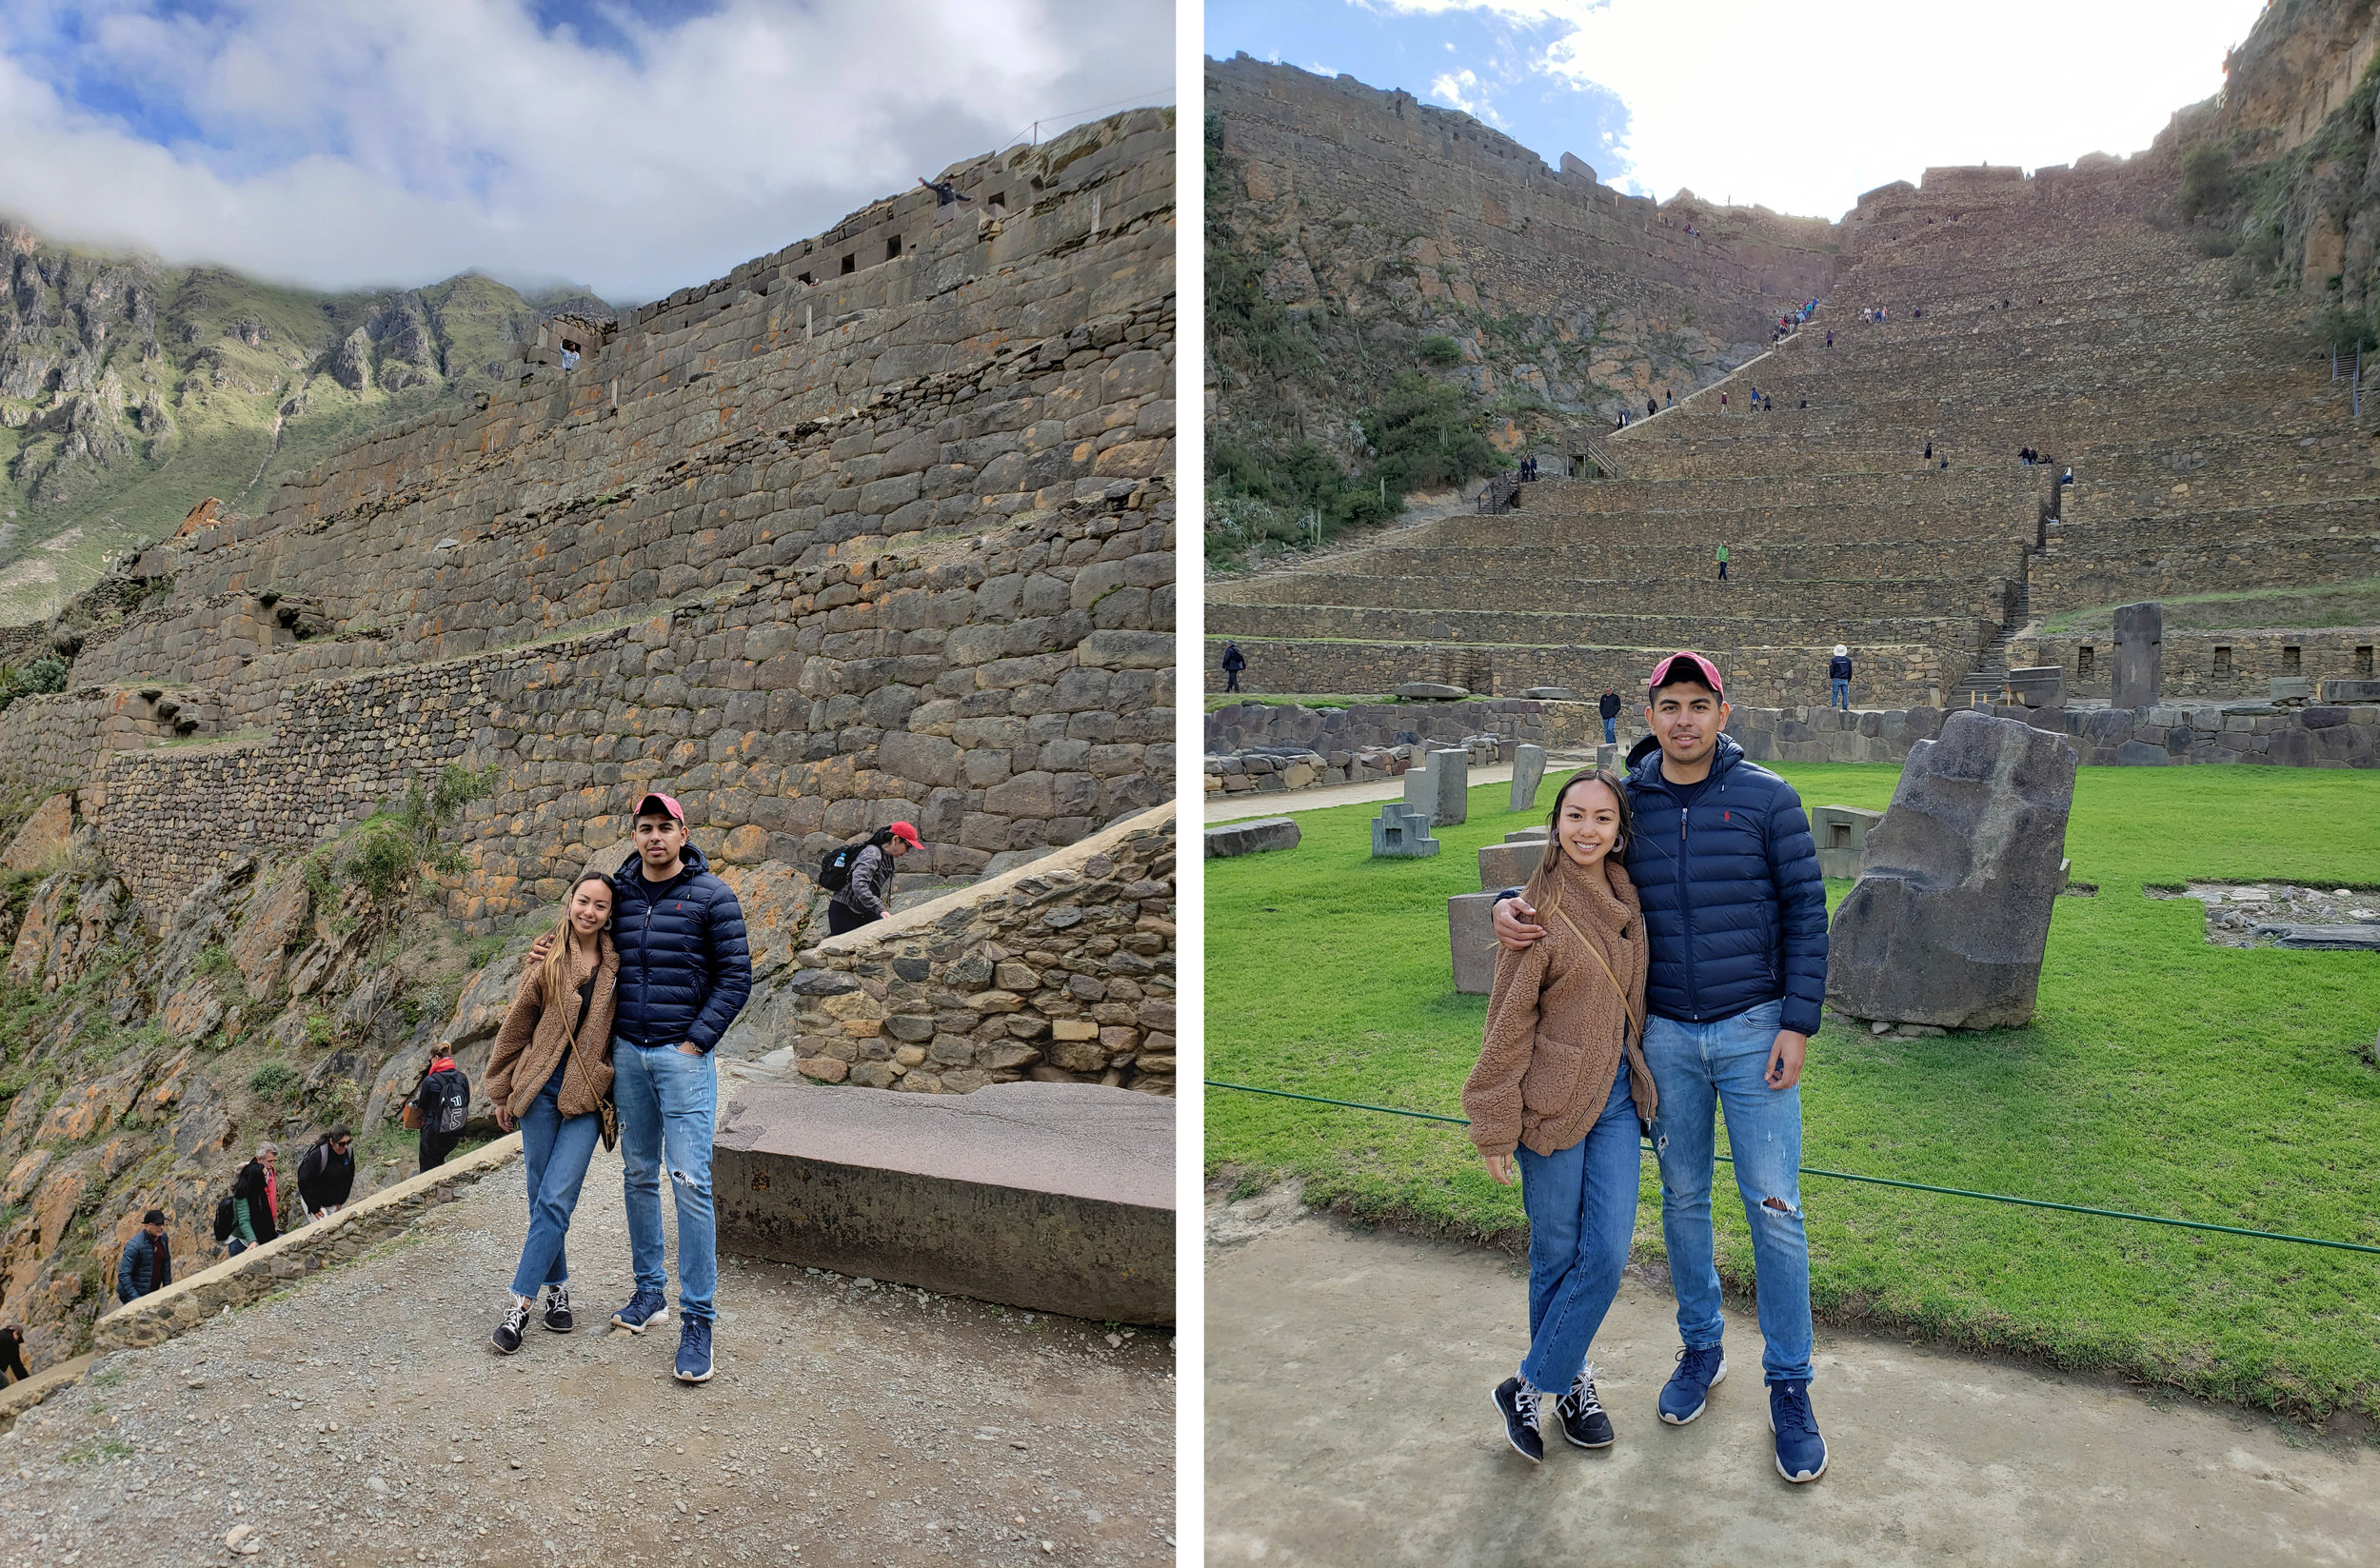 Lastly we went to Ollantaytambo, which served as a fortress for the Incas. It's quite a flight of stairs, however the rock structures you find at the top are impressive. Everything is built from singular rocks, that were smoothened, sharpened and perfected to fit each other. It's like a perfect puzzle, the precision is truly amazing and no one really knows how they managed to do this. Some people say it was 👽who made them hahaha.